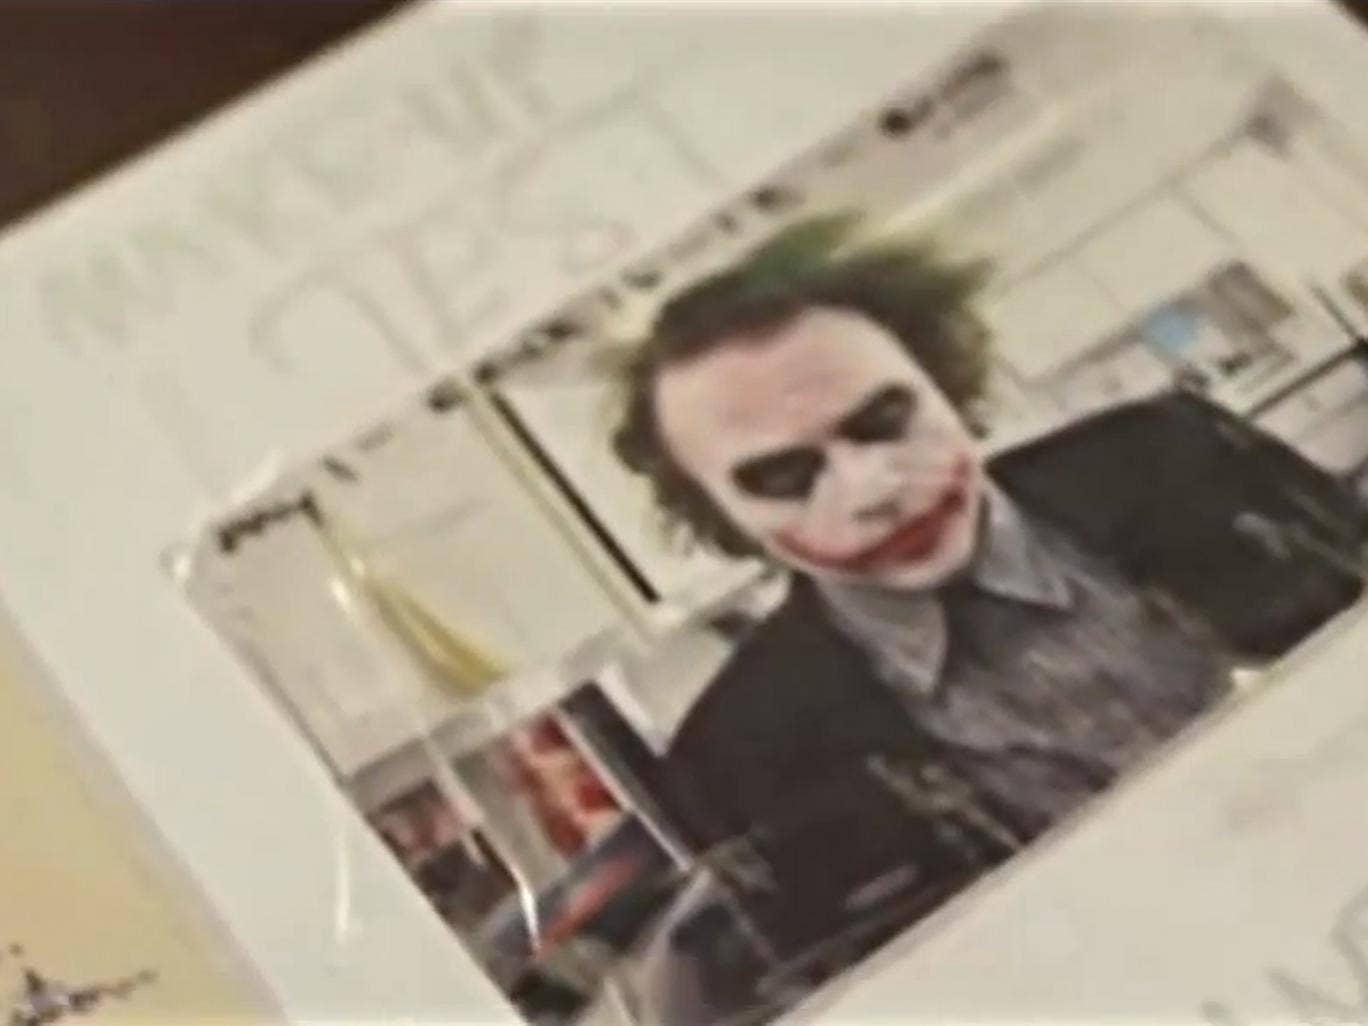 A still from 'Too Young to Die' showing Heath Ledger in Joker make-up